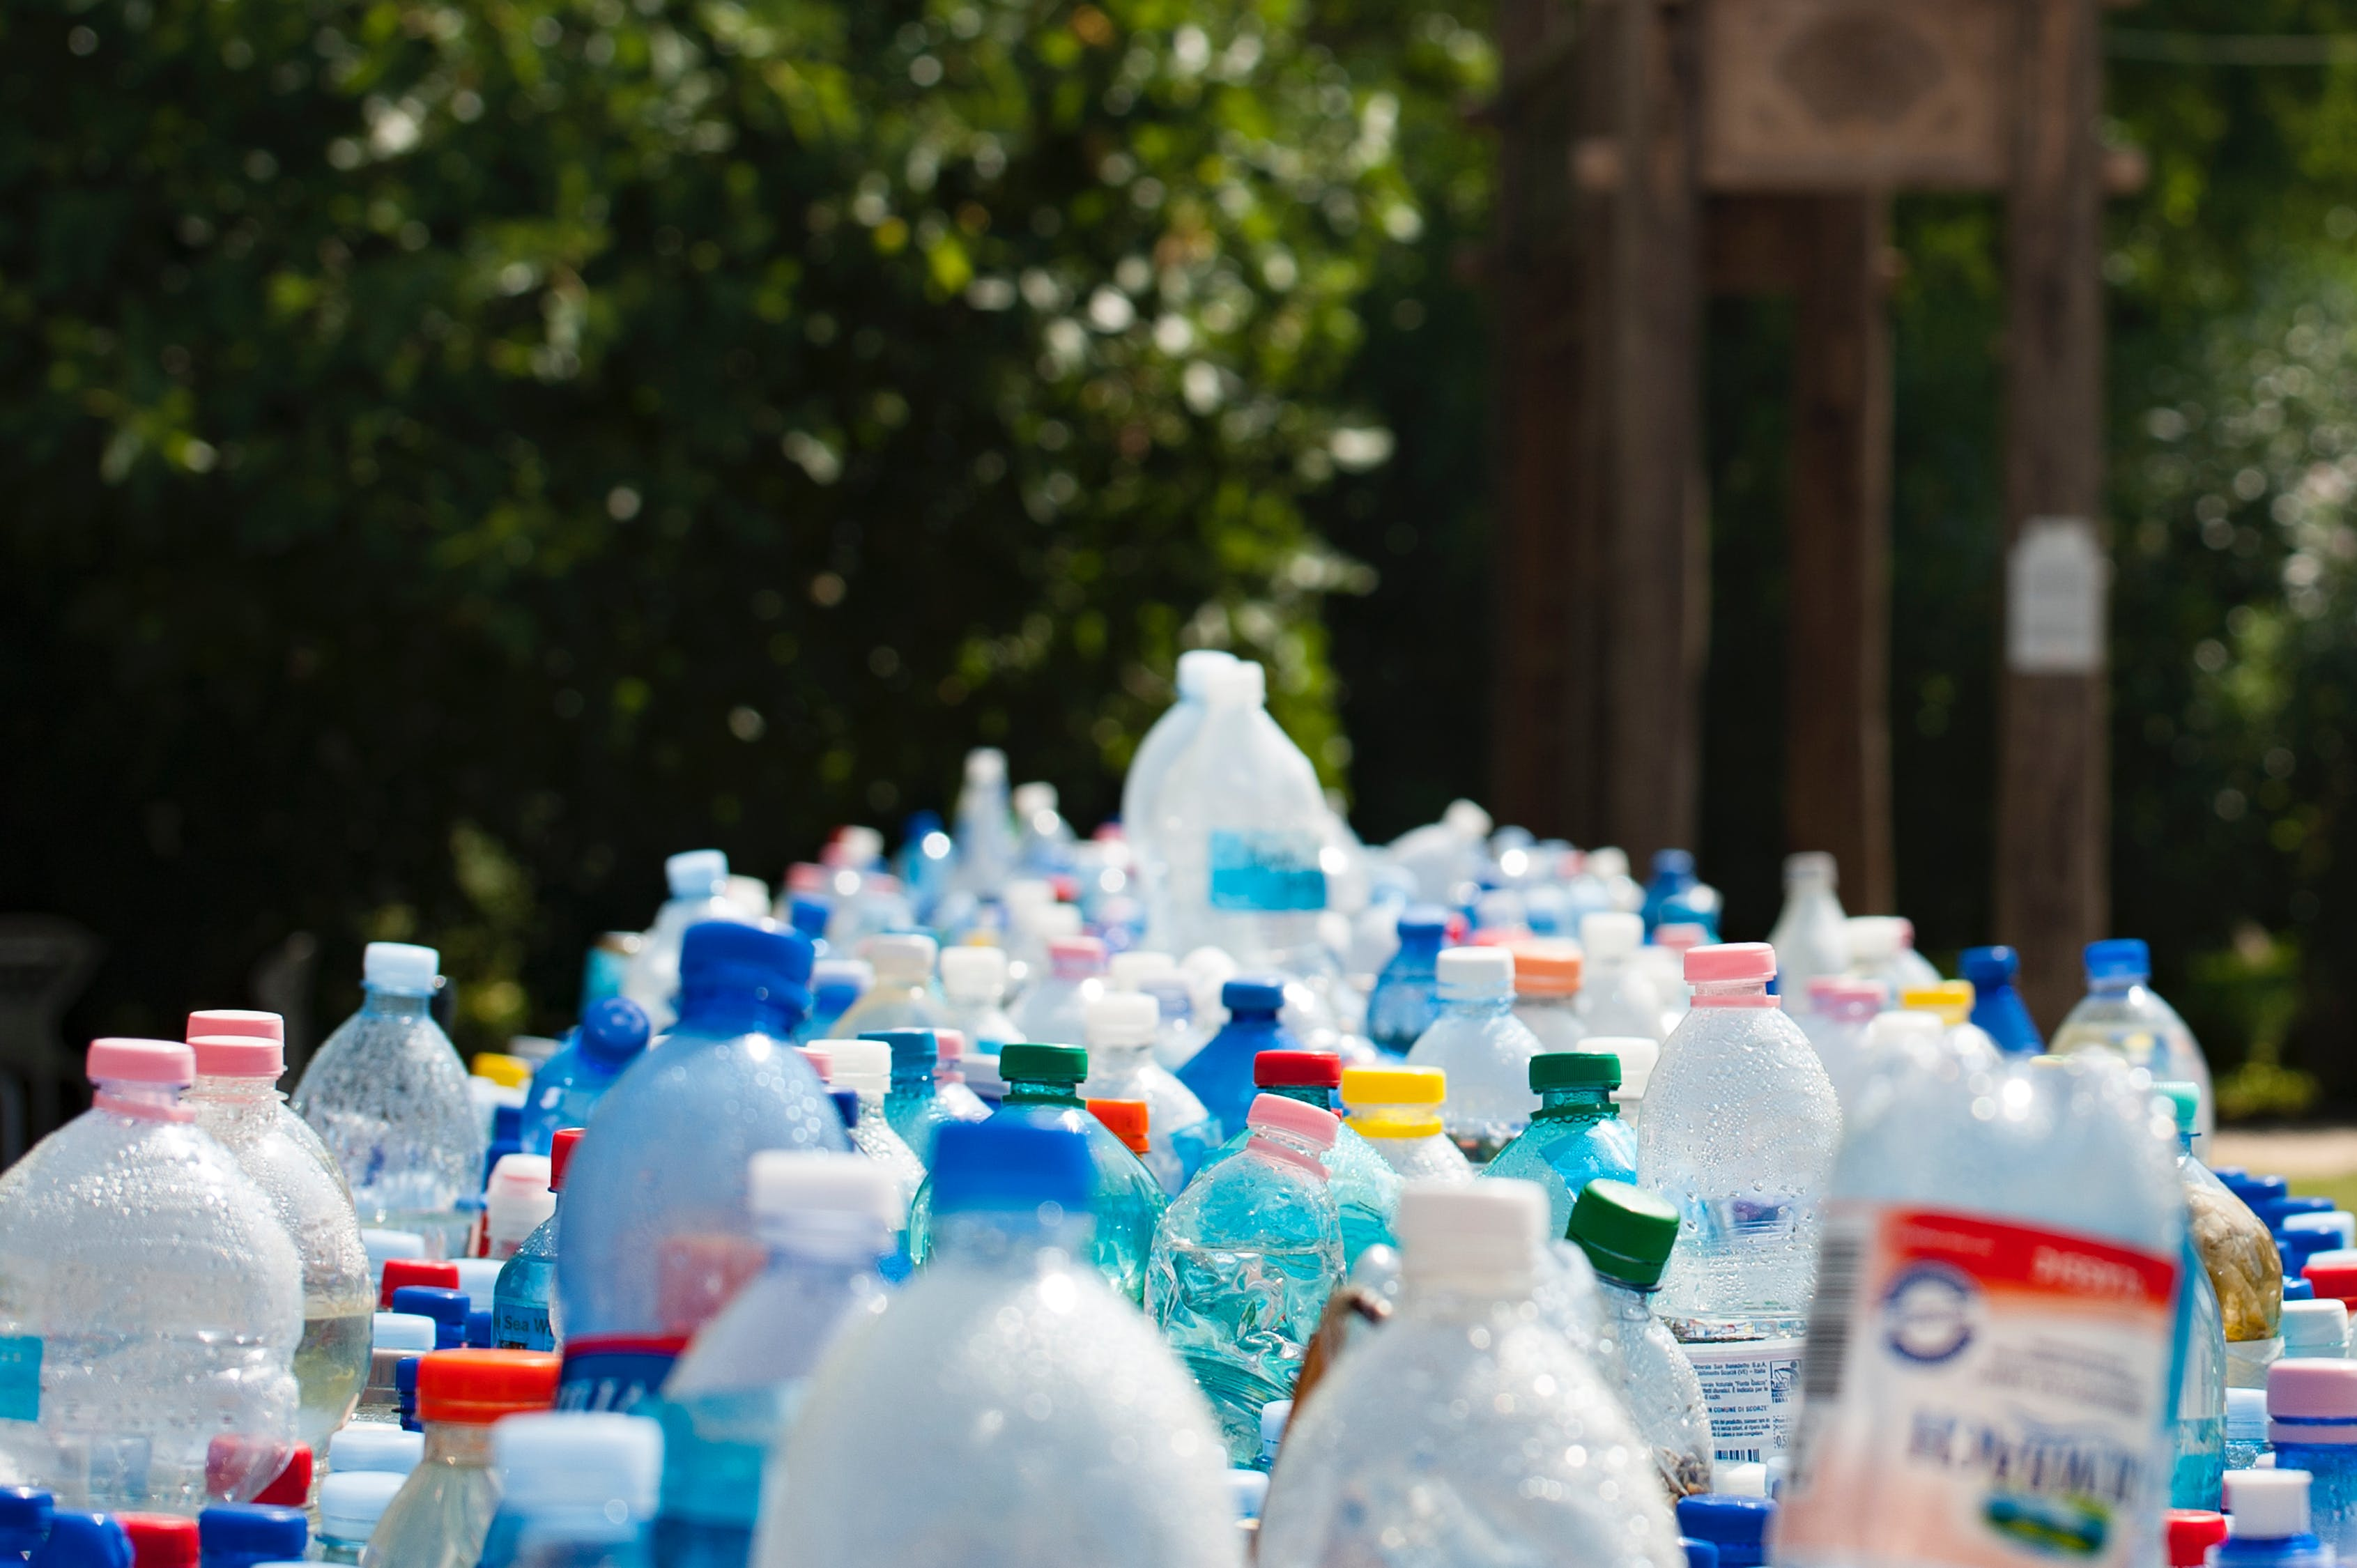 Plastic Industry Set to Outpace Coal Emissions by 2030